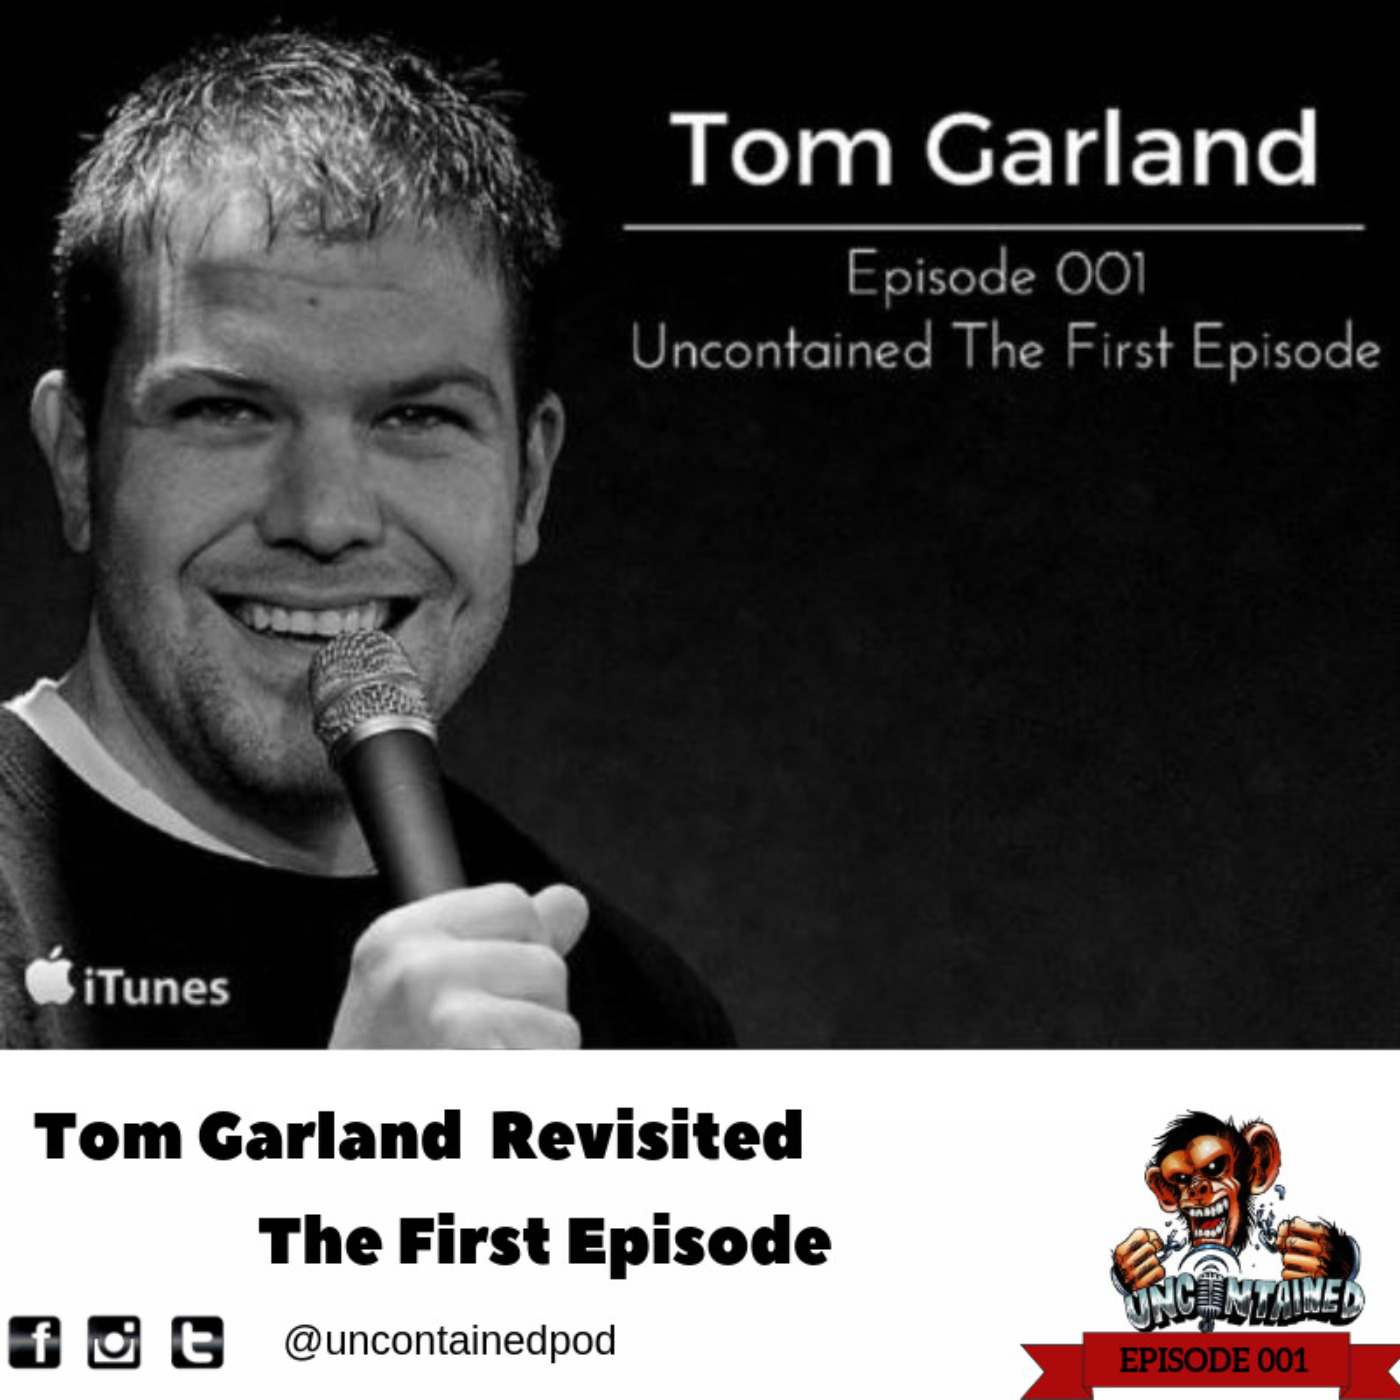 Re-Visited Episode 001: Tom Garland